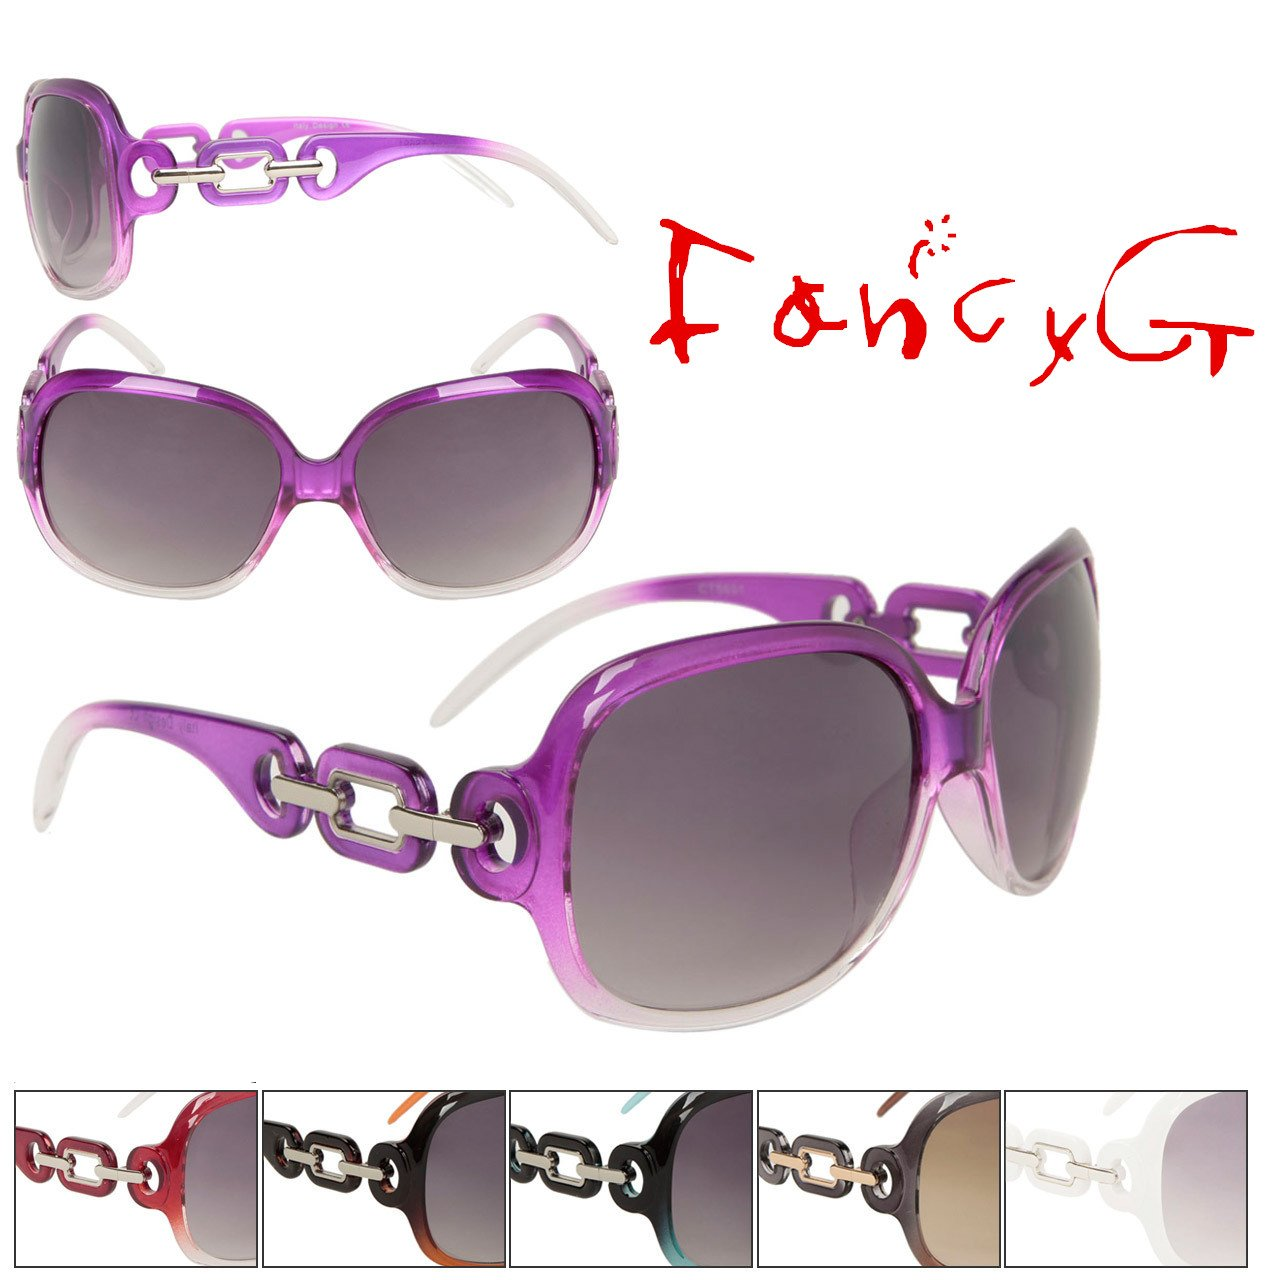 FancyG/® Womens Fashion Sunglasses Diamond Chain Style Vintage Look Assorted Package of 12